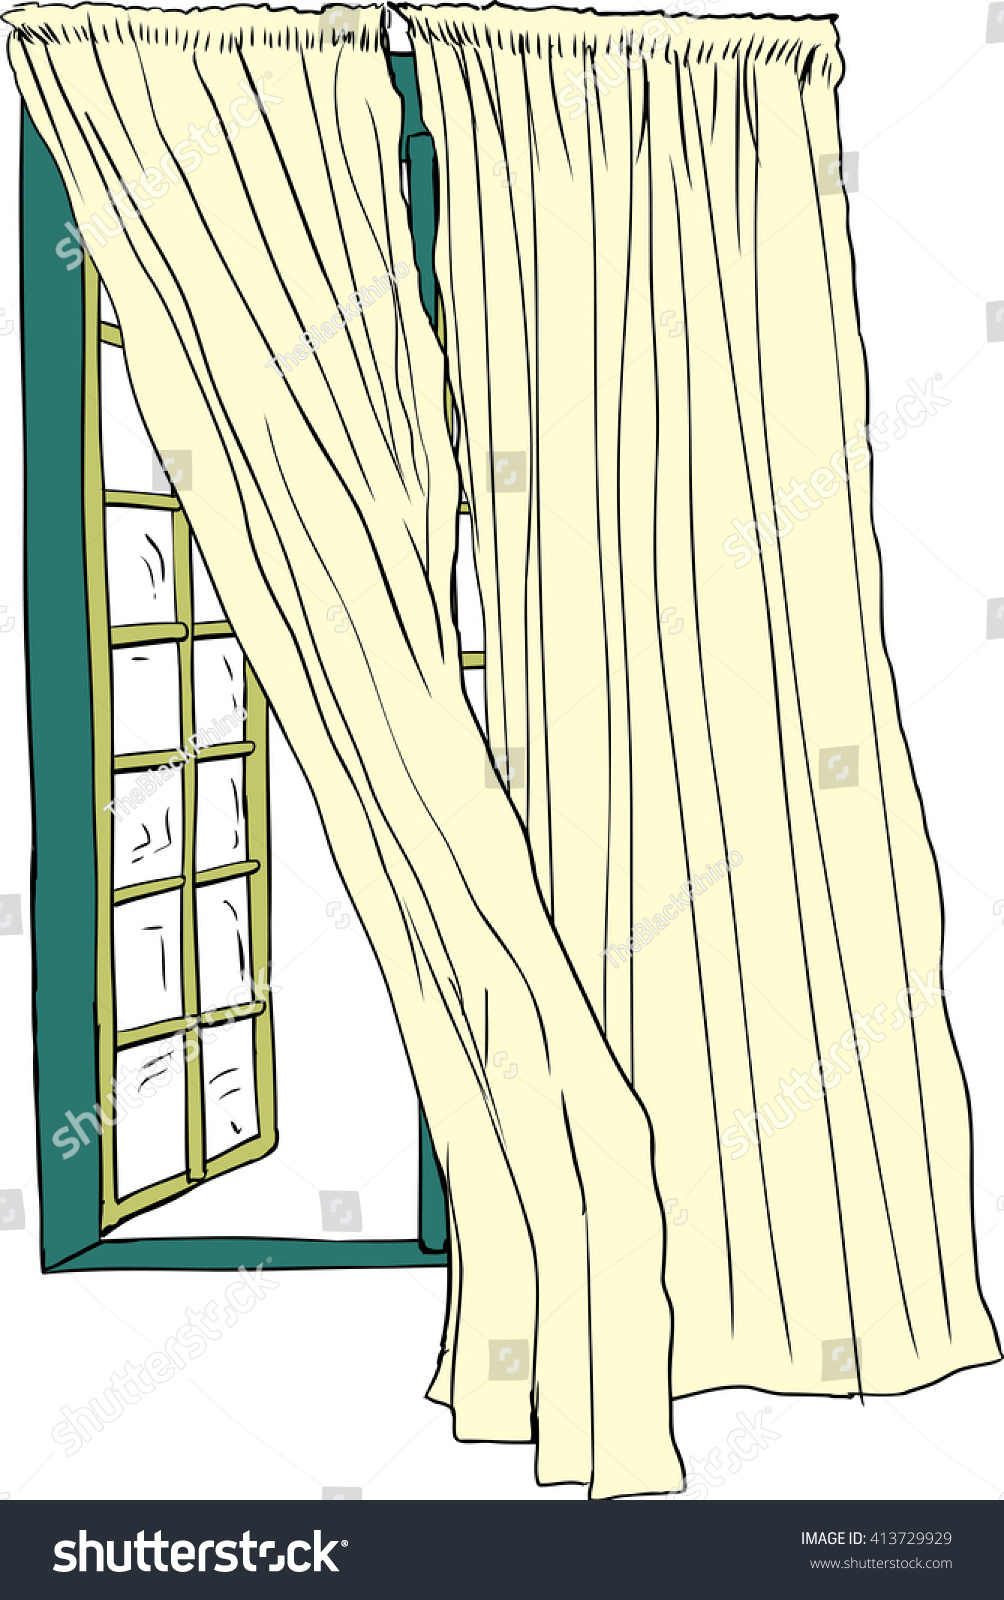 Open window with curtains blowing - Front View On Isolated Hand Drawn Illustration Of Open Casement Window With Blowing Curtains